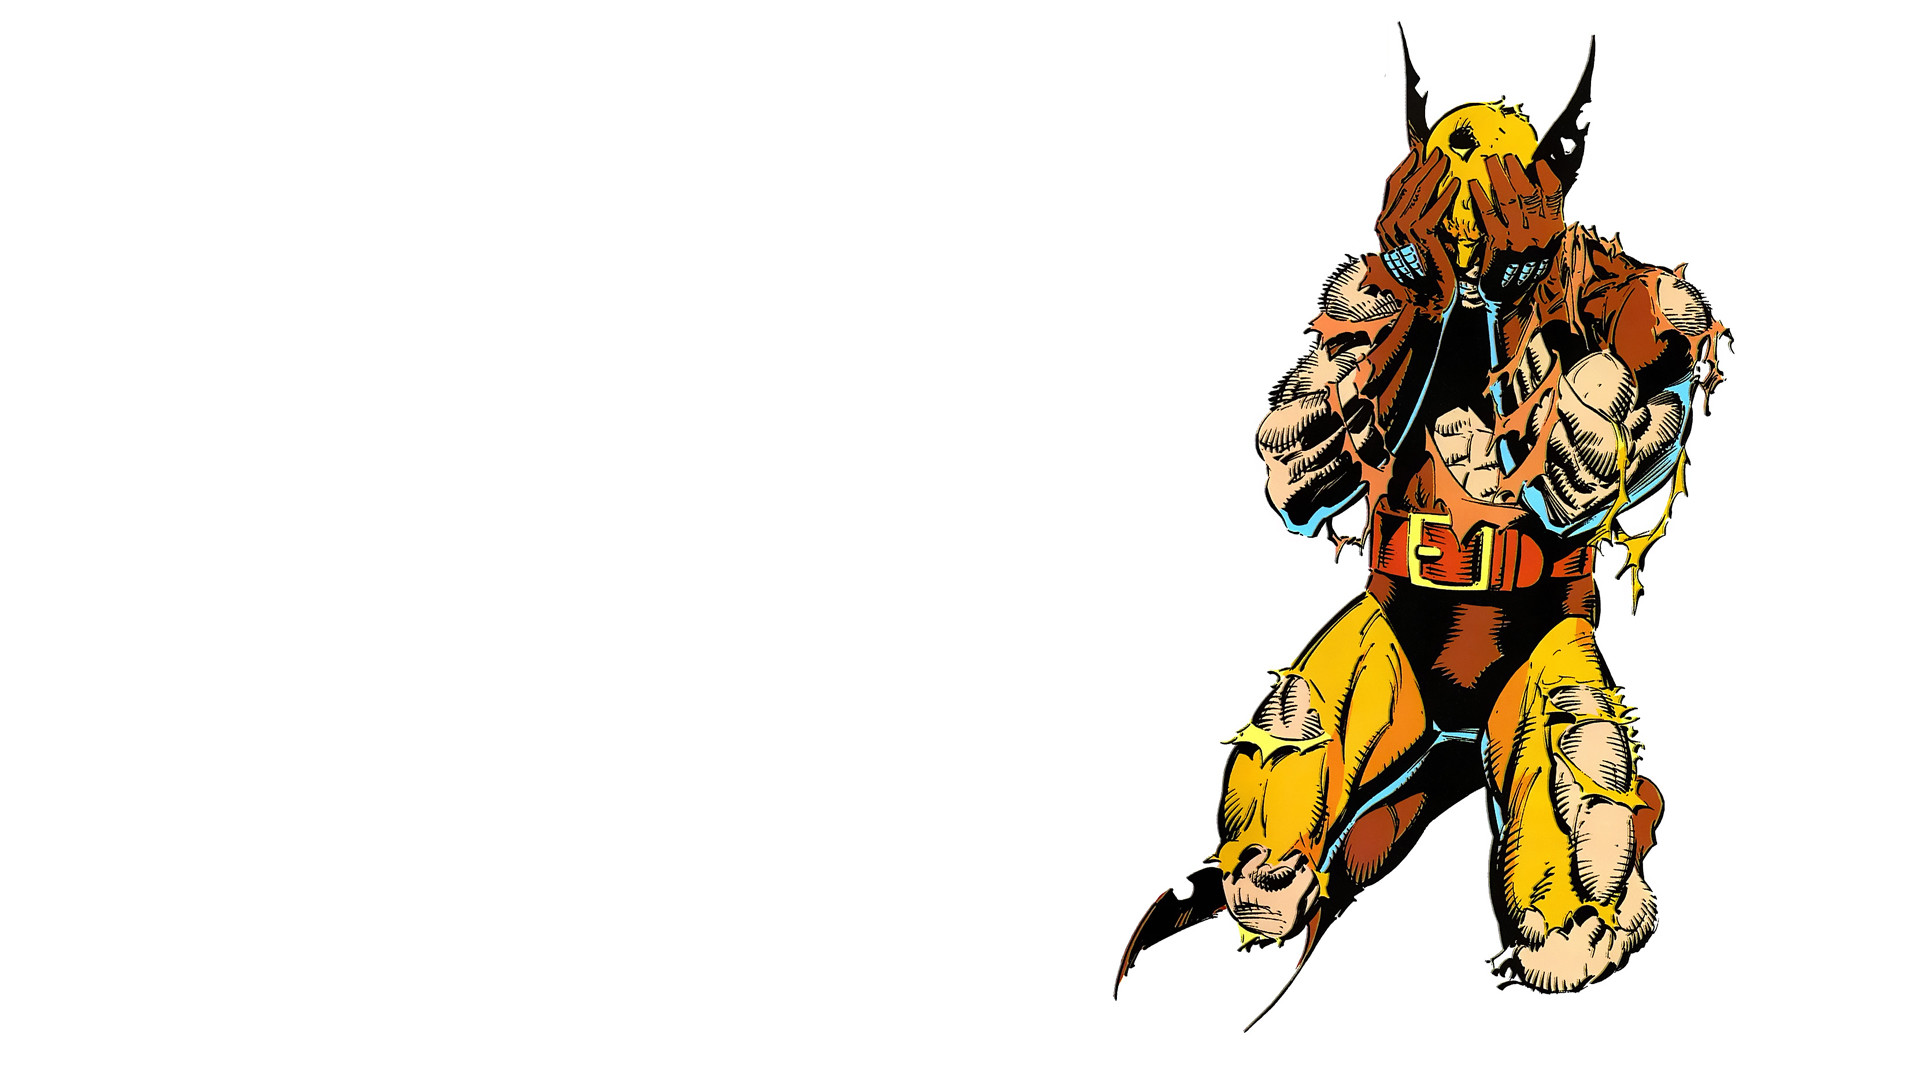 1920x1080 Comics - Wolverine Comic Superhero Wallpaper